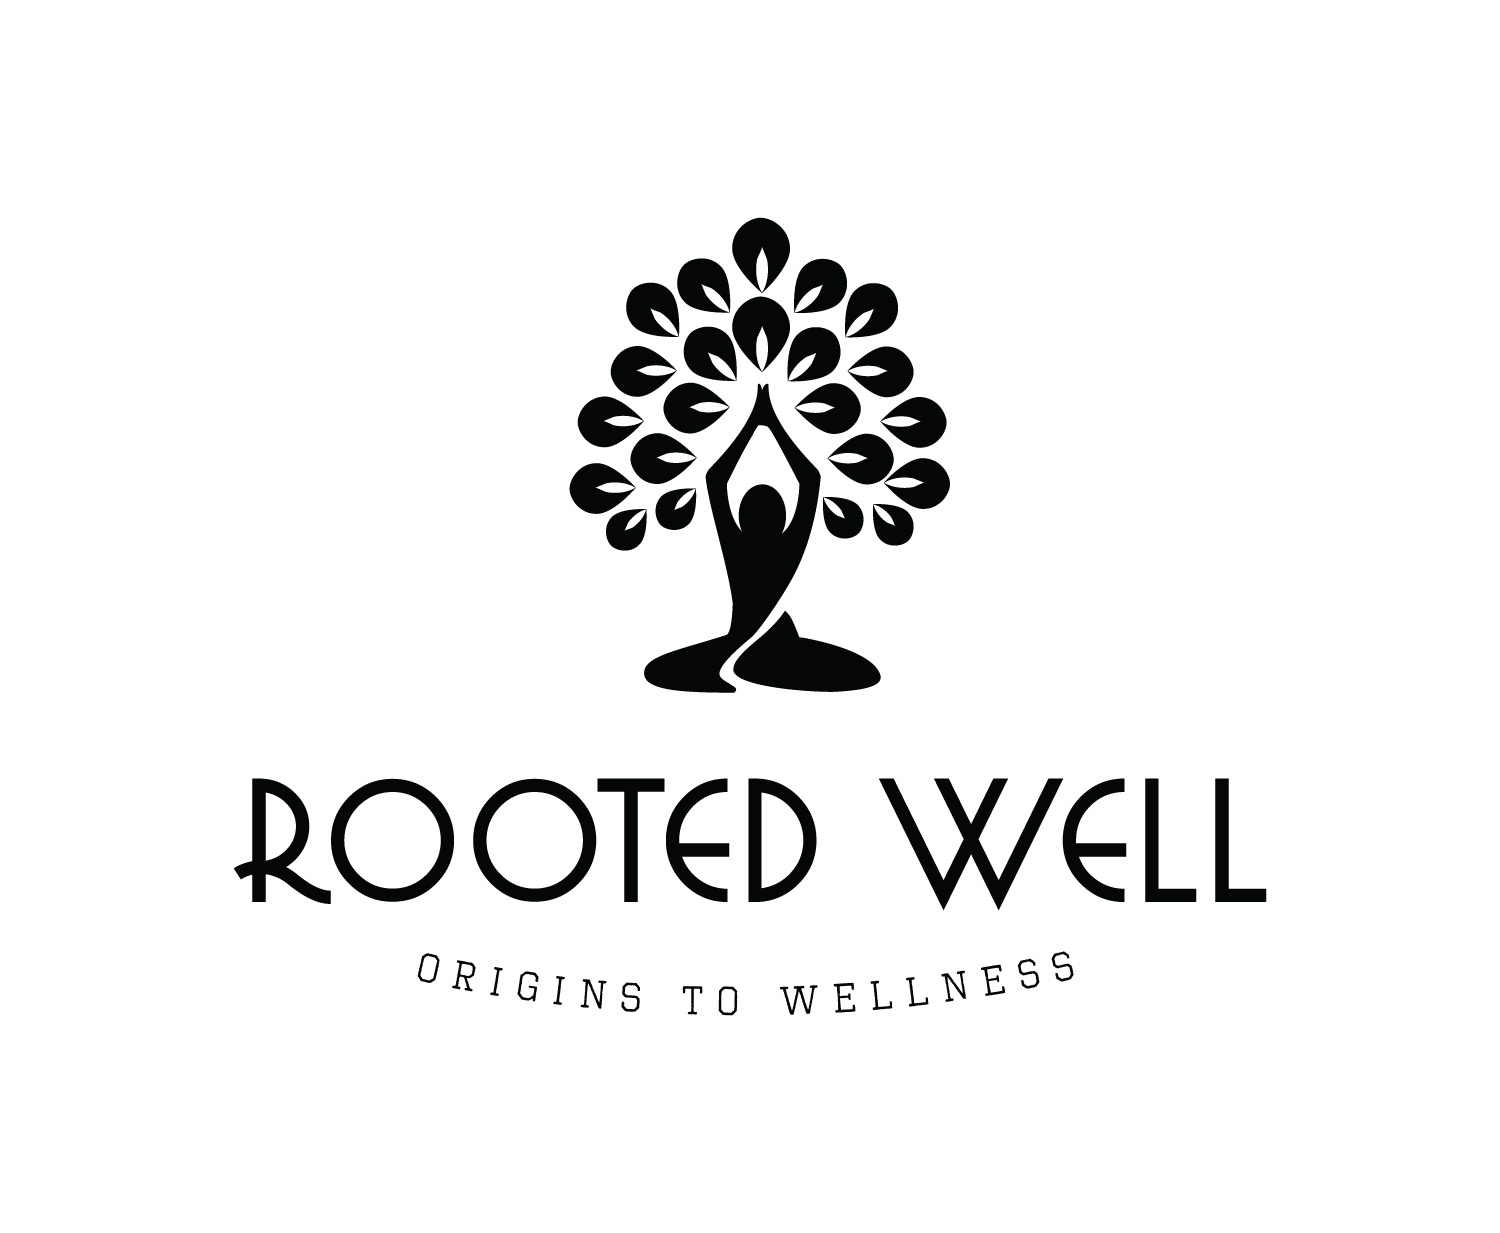 Rooted Well Black and White Logo designed by Xoil Design